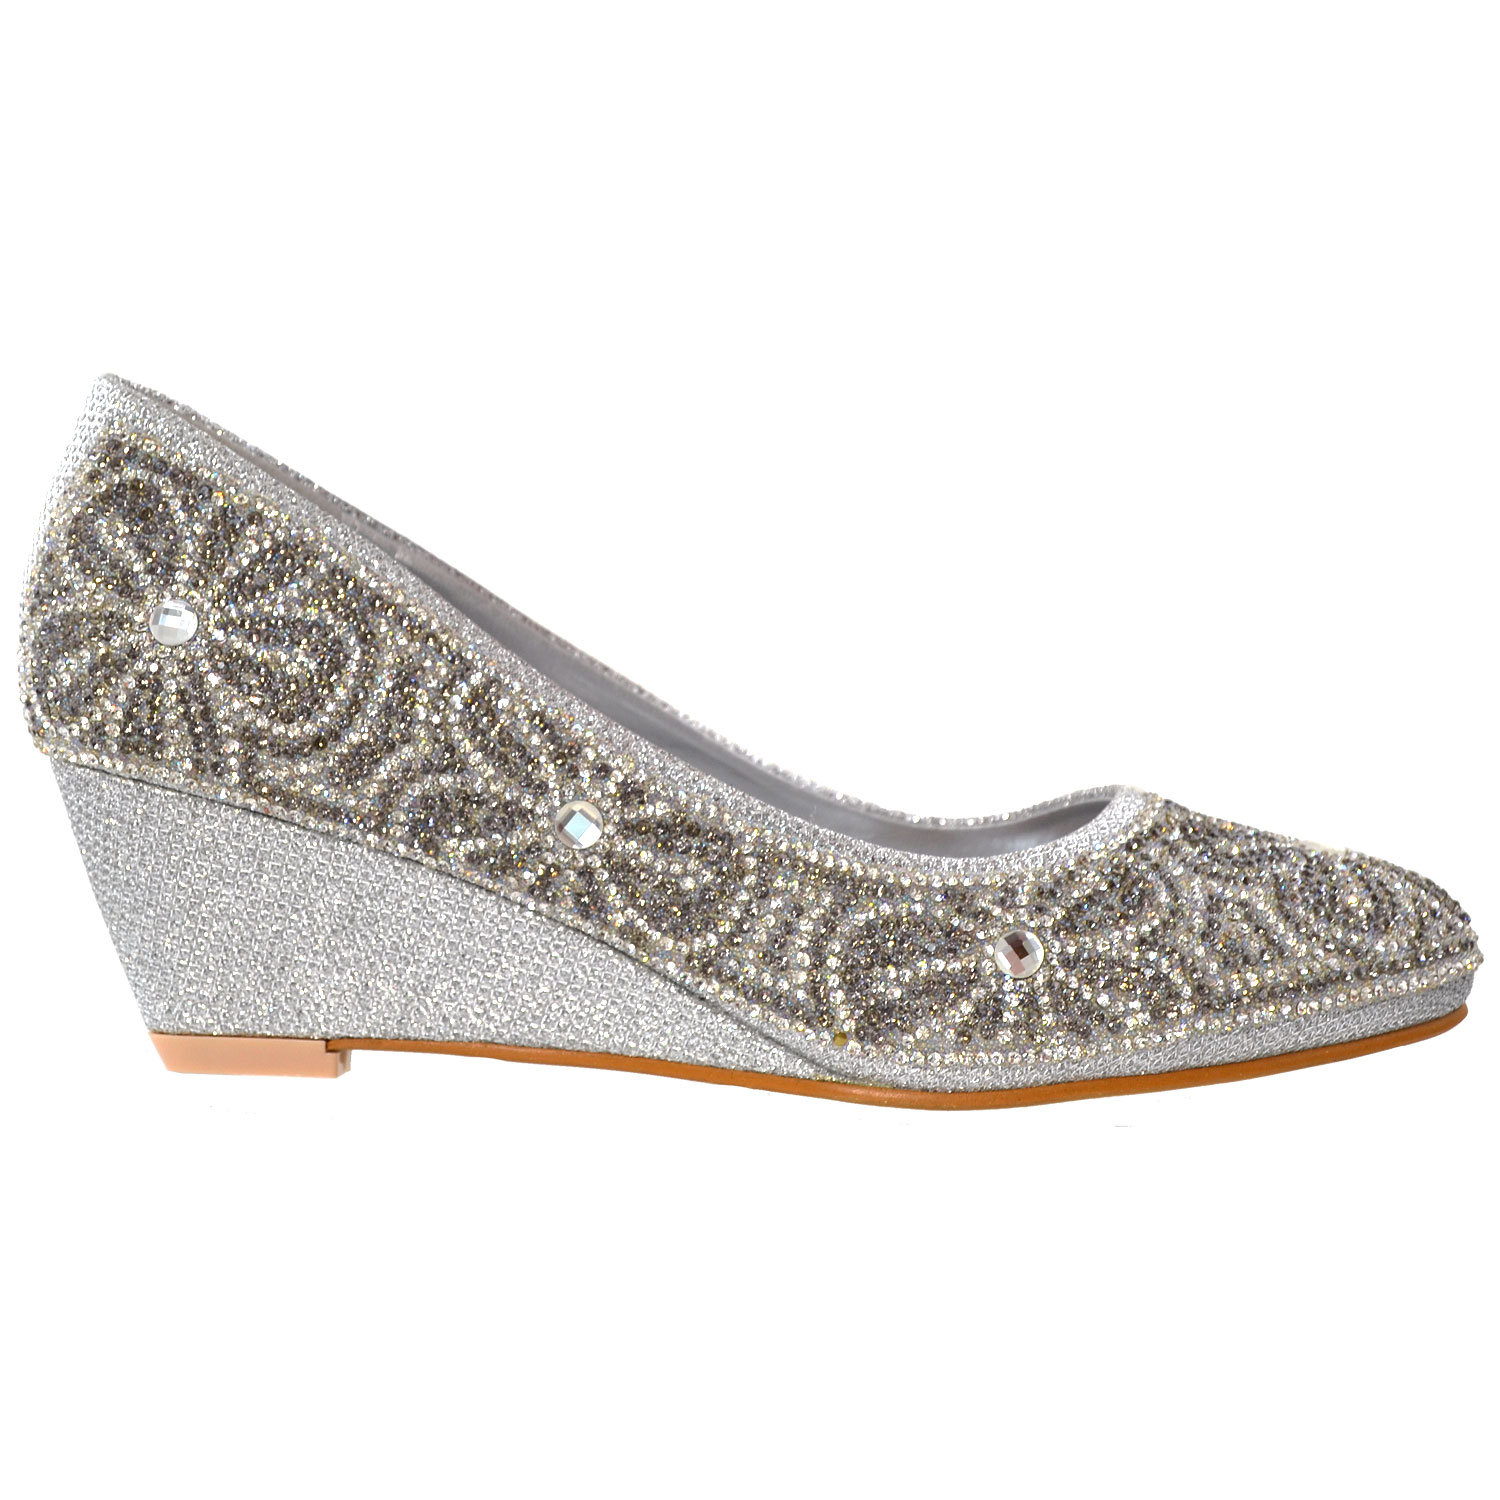 776588cdd9dd Details about Pumps Dress Shoes Slip On Wedge Floral Print Rhinestone Women s  Silver Shoes